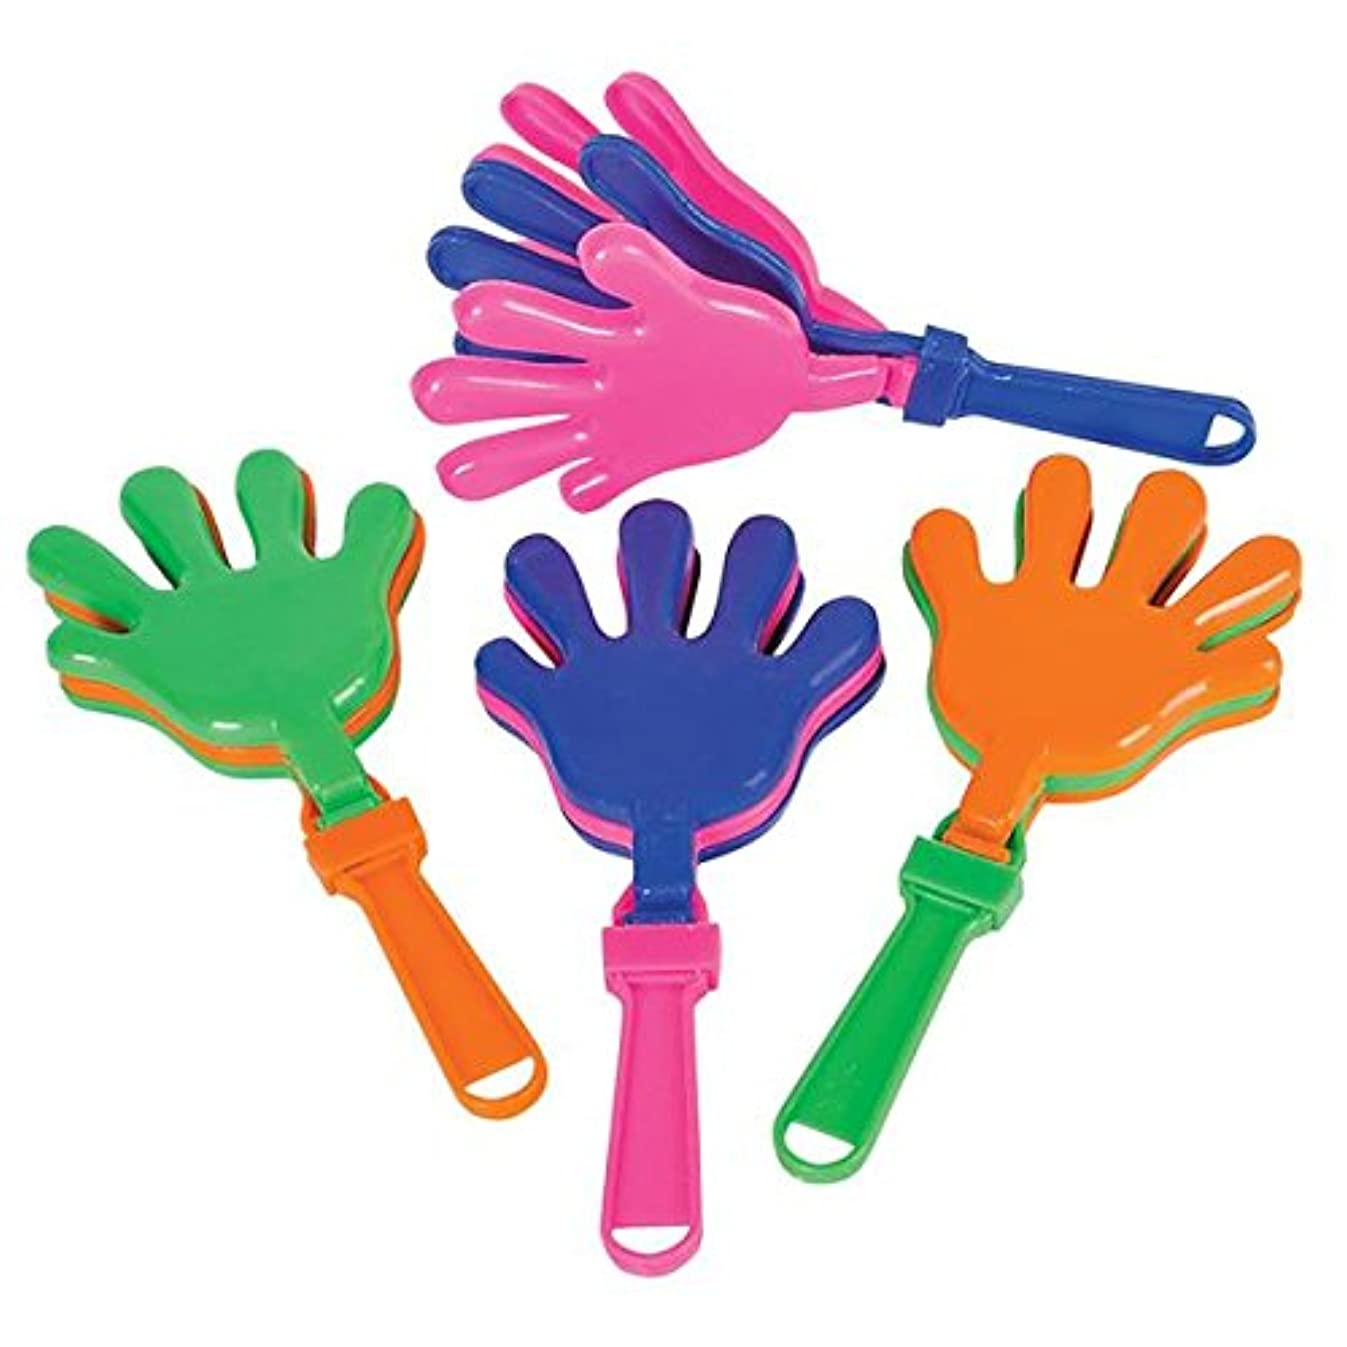 Rhode Island Novelty 12 Hand Clappers Noisemakers Favors 7.5